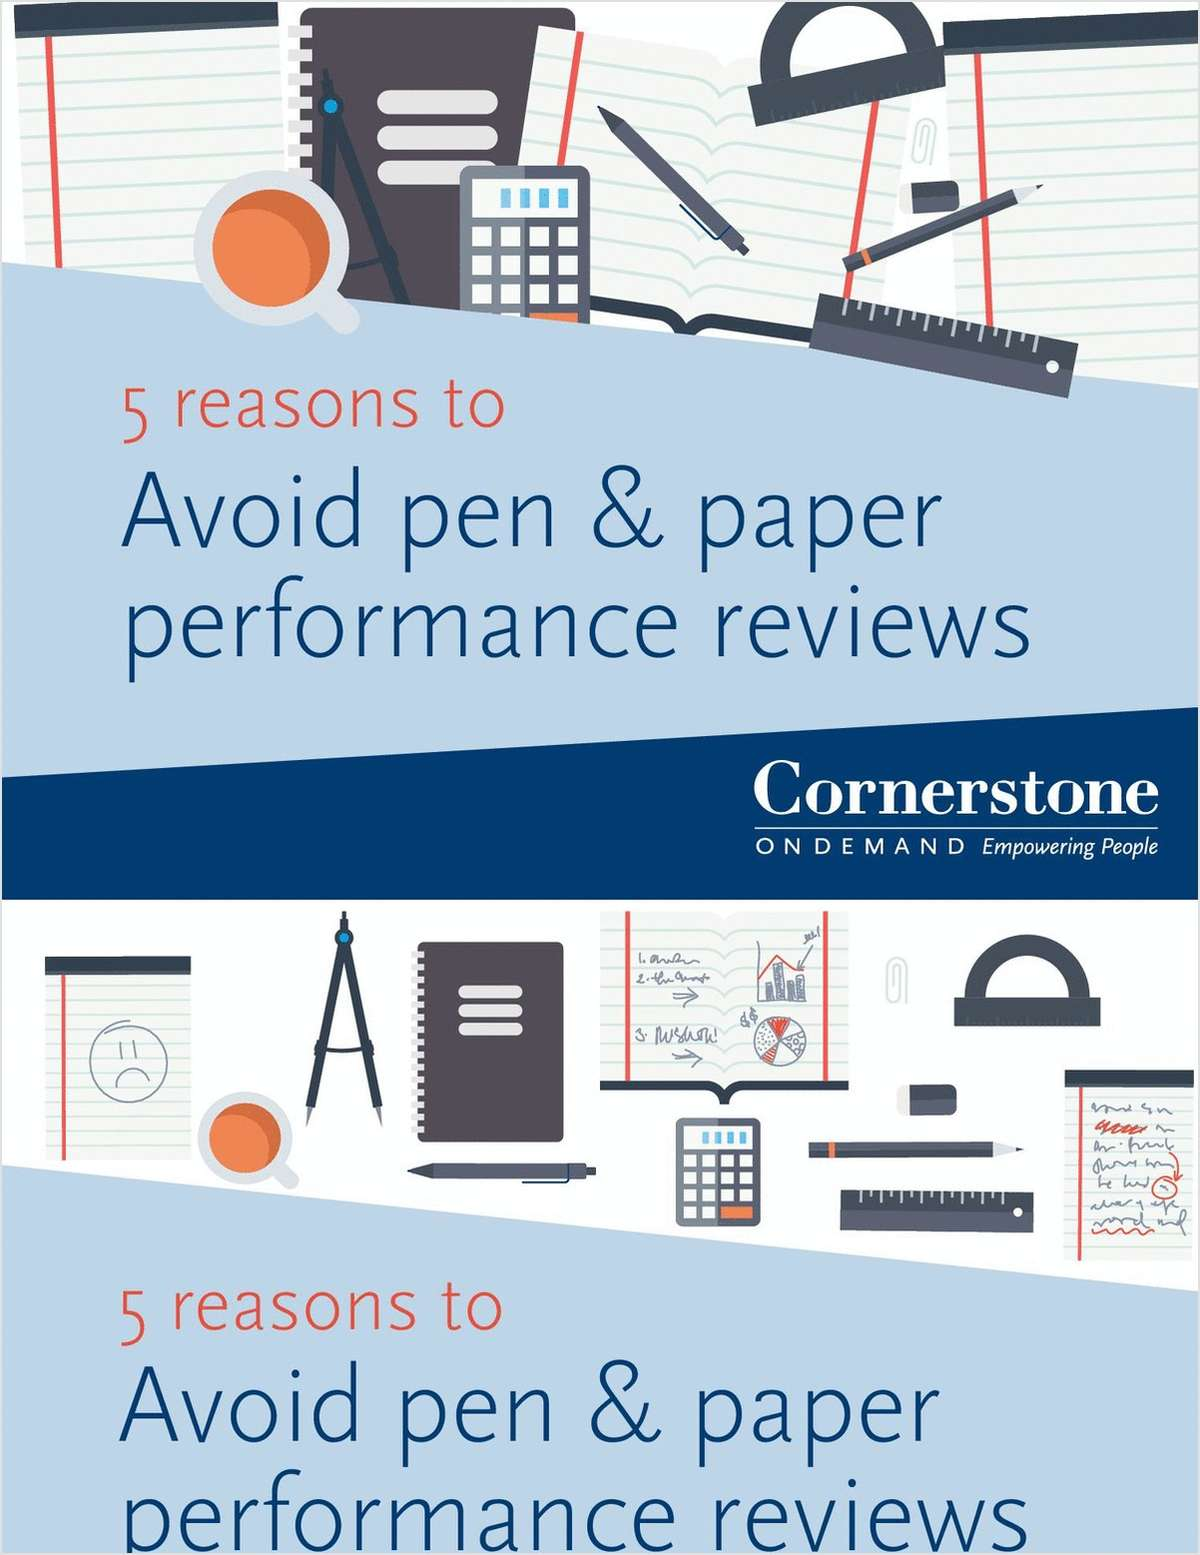 5 Reasons to Avoid Pen & Paper Performance Reviews in Growing Organizations